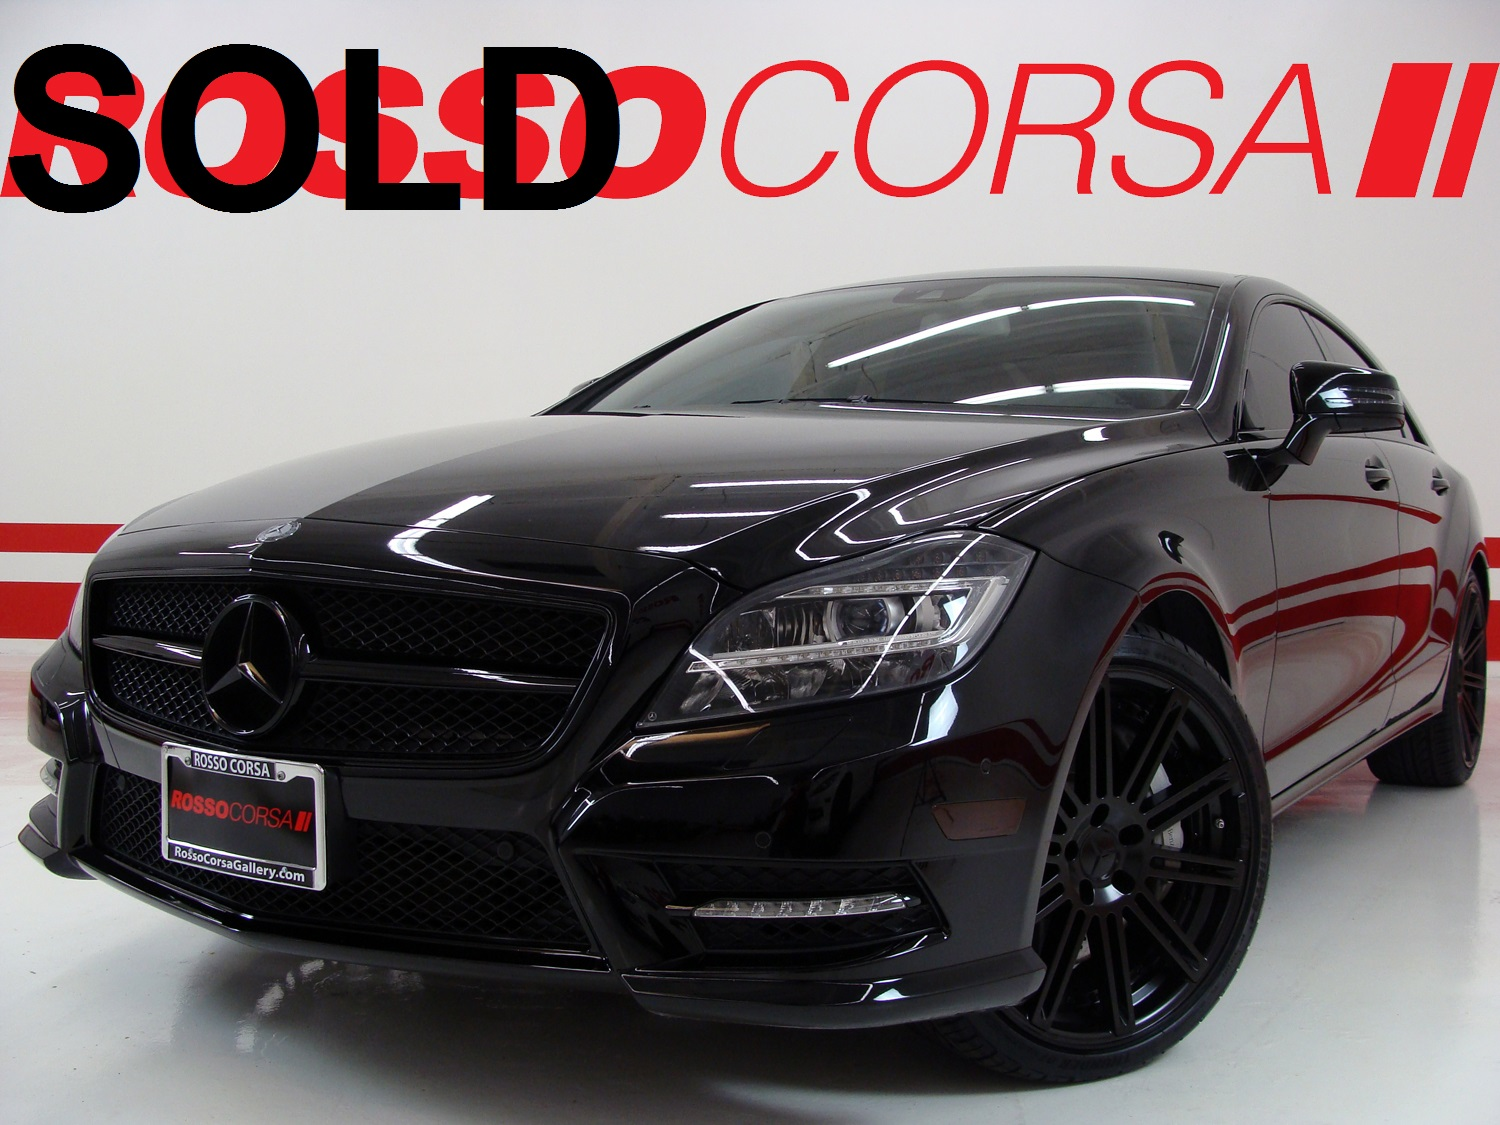 2013 Mercedes-Benz CLS550 CUSTOM ($82K MSRP)